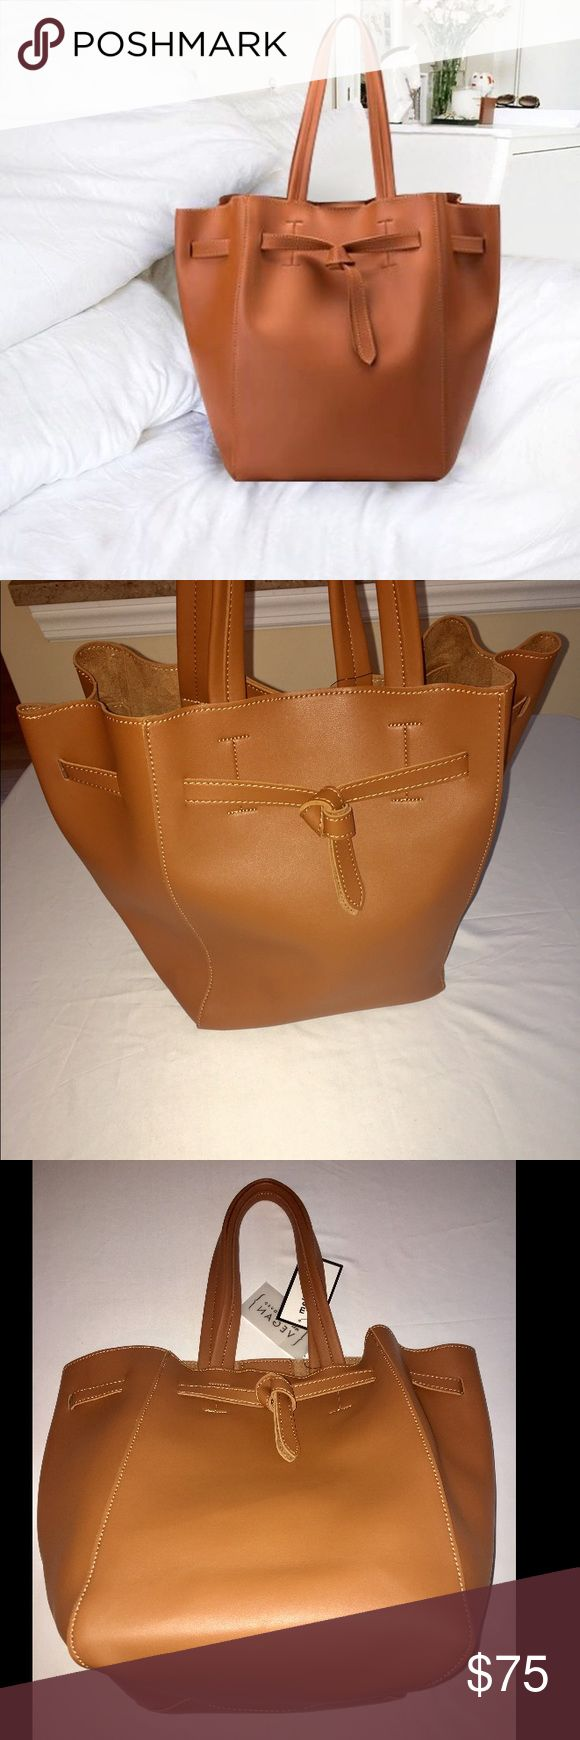 Melie Bianco Tan Handbag with Extra Bag Detachable New with tags Melie Bianco Bags Totes